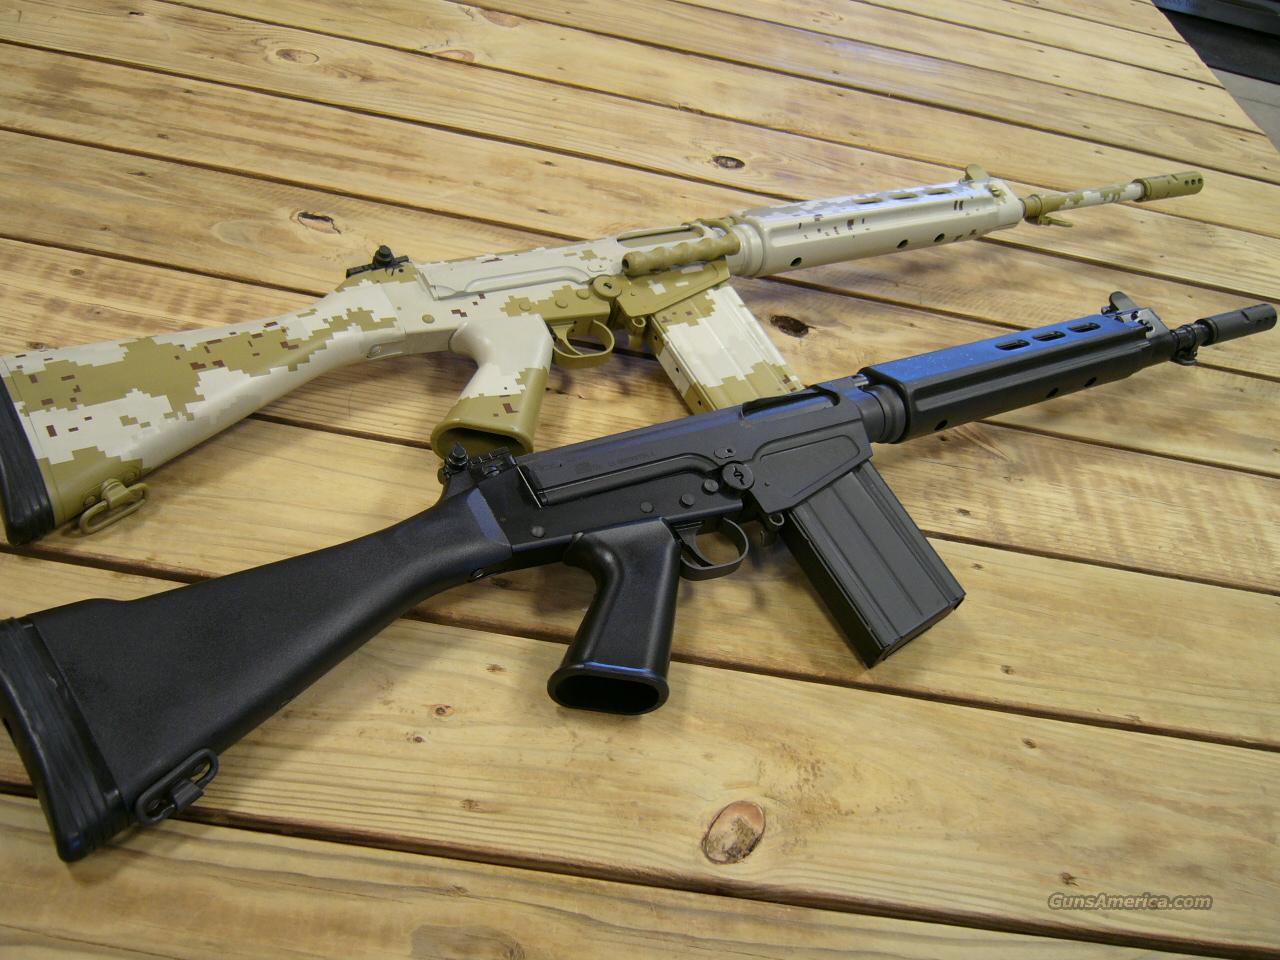 DSA FN FAL 308 TACTICAL   Guns > Rifles > Heckler & Koch Rifles > Tactical